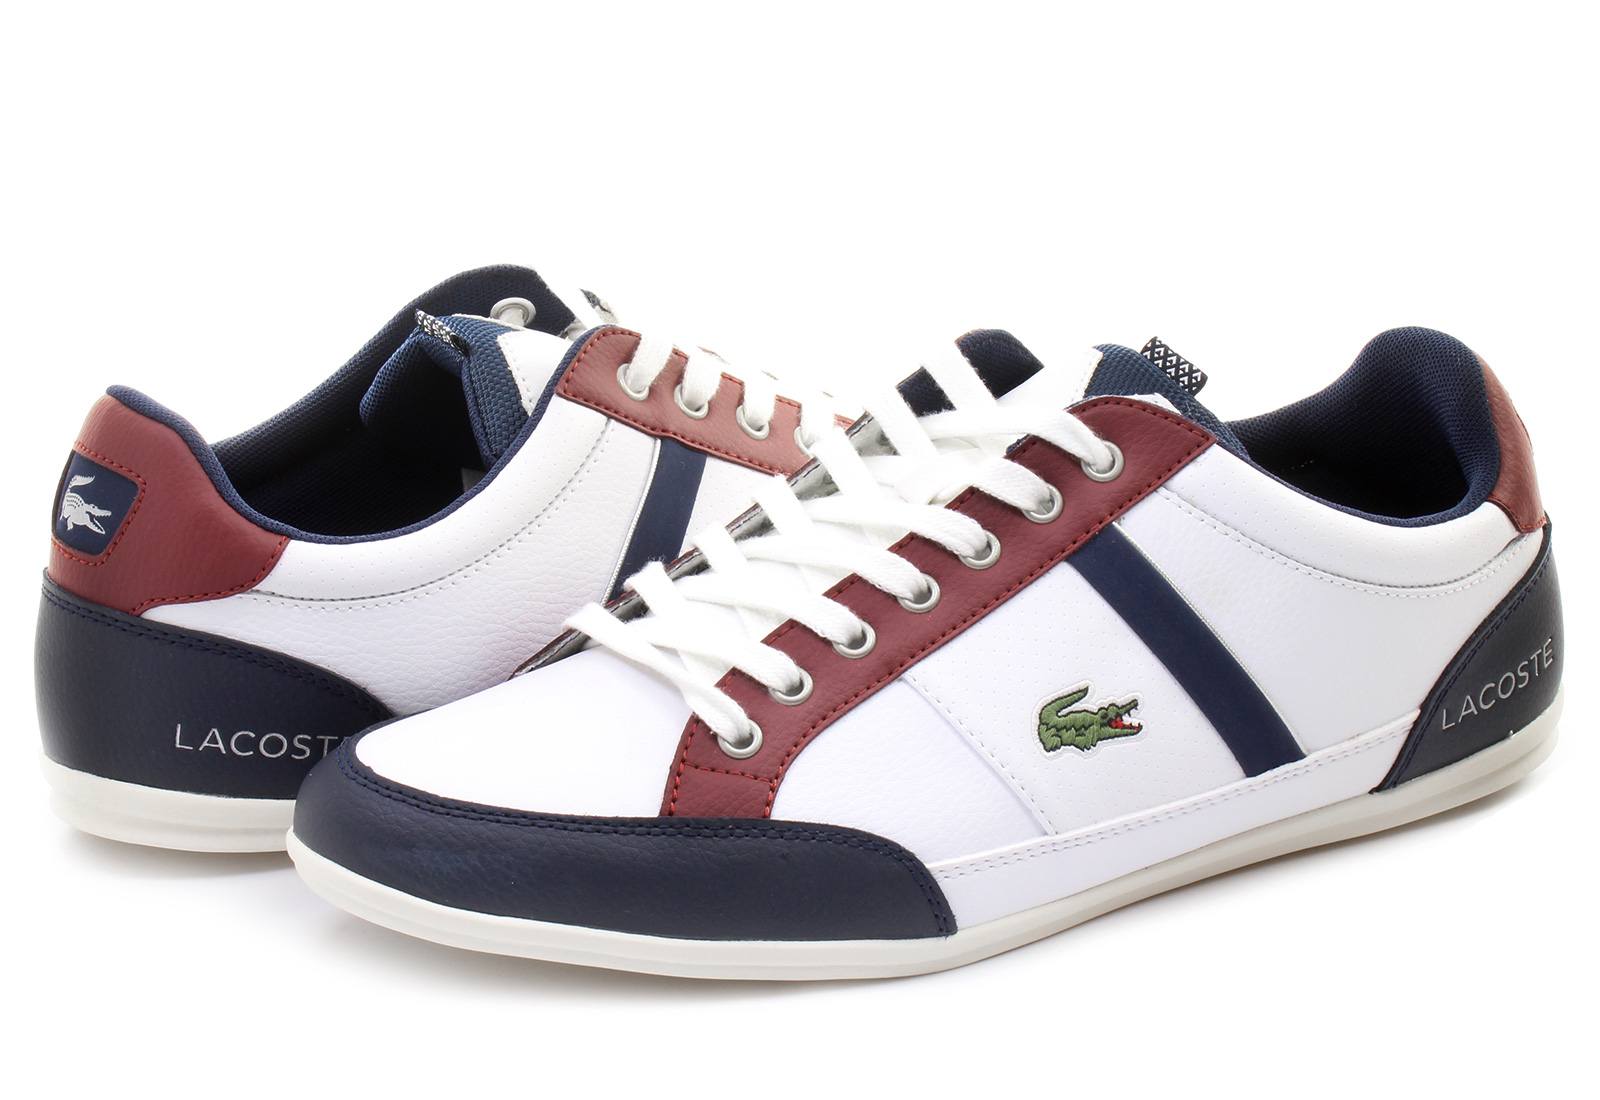 lacoste shoes chaymon 151spm0045 x96 online shop for sneakers shoes and boots. Black Bedroom Furniture Sets. Home Design Ideas